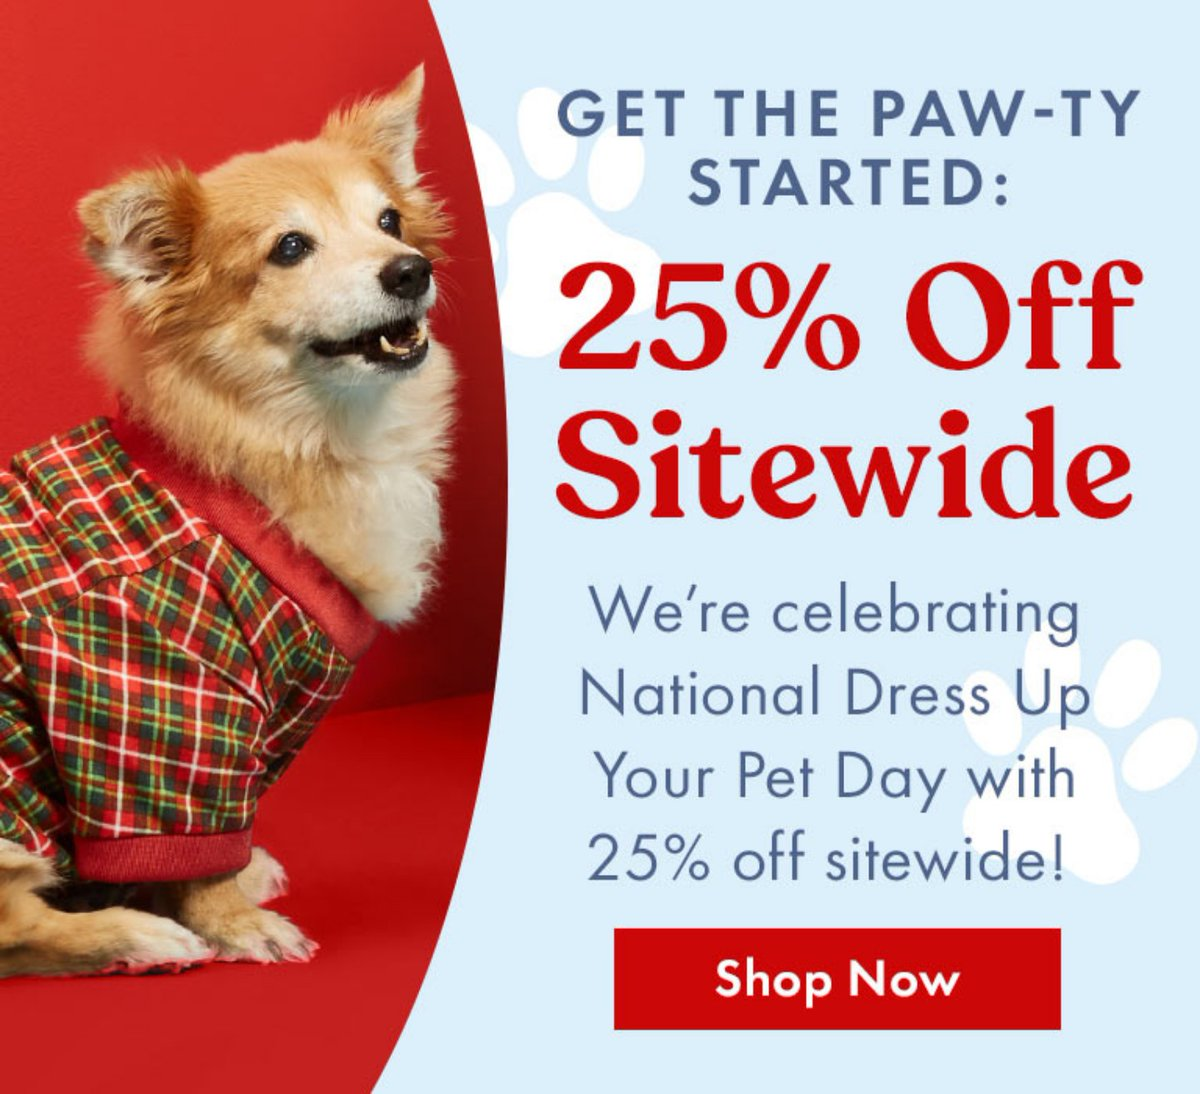 Celebrate National Dress Up Your Pet Day with Modcloth! Save 25% Sitewide. #ad Shop here:  Offer valid 1/13/2021 #womensfashionsale #womensfashion #NationalDressUpYourPetDay